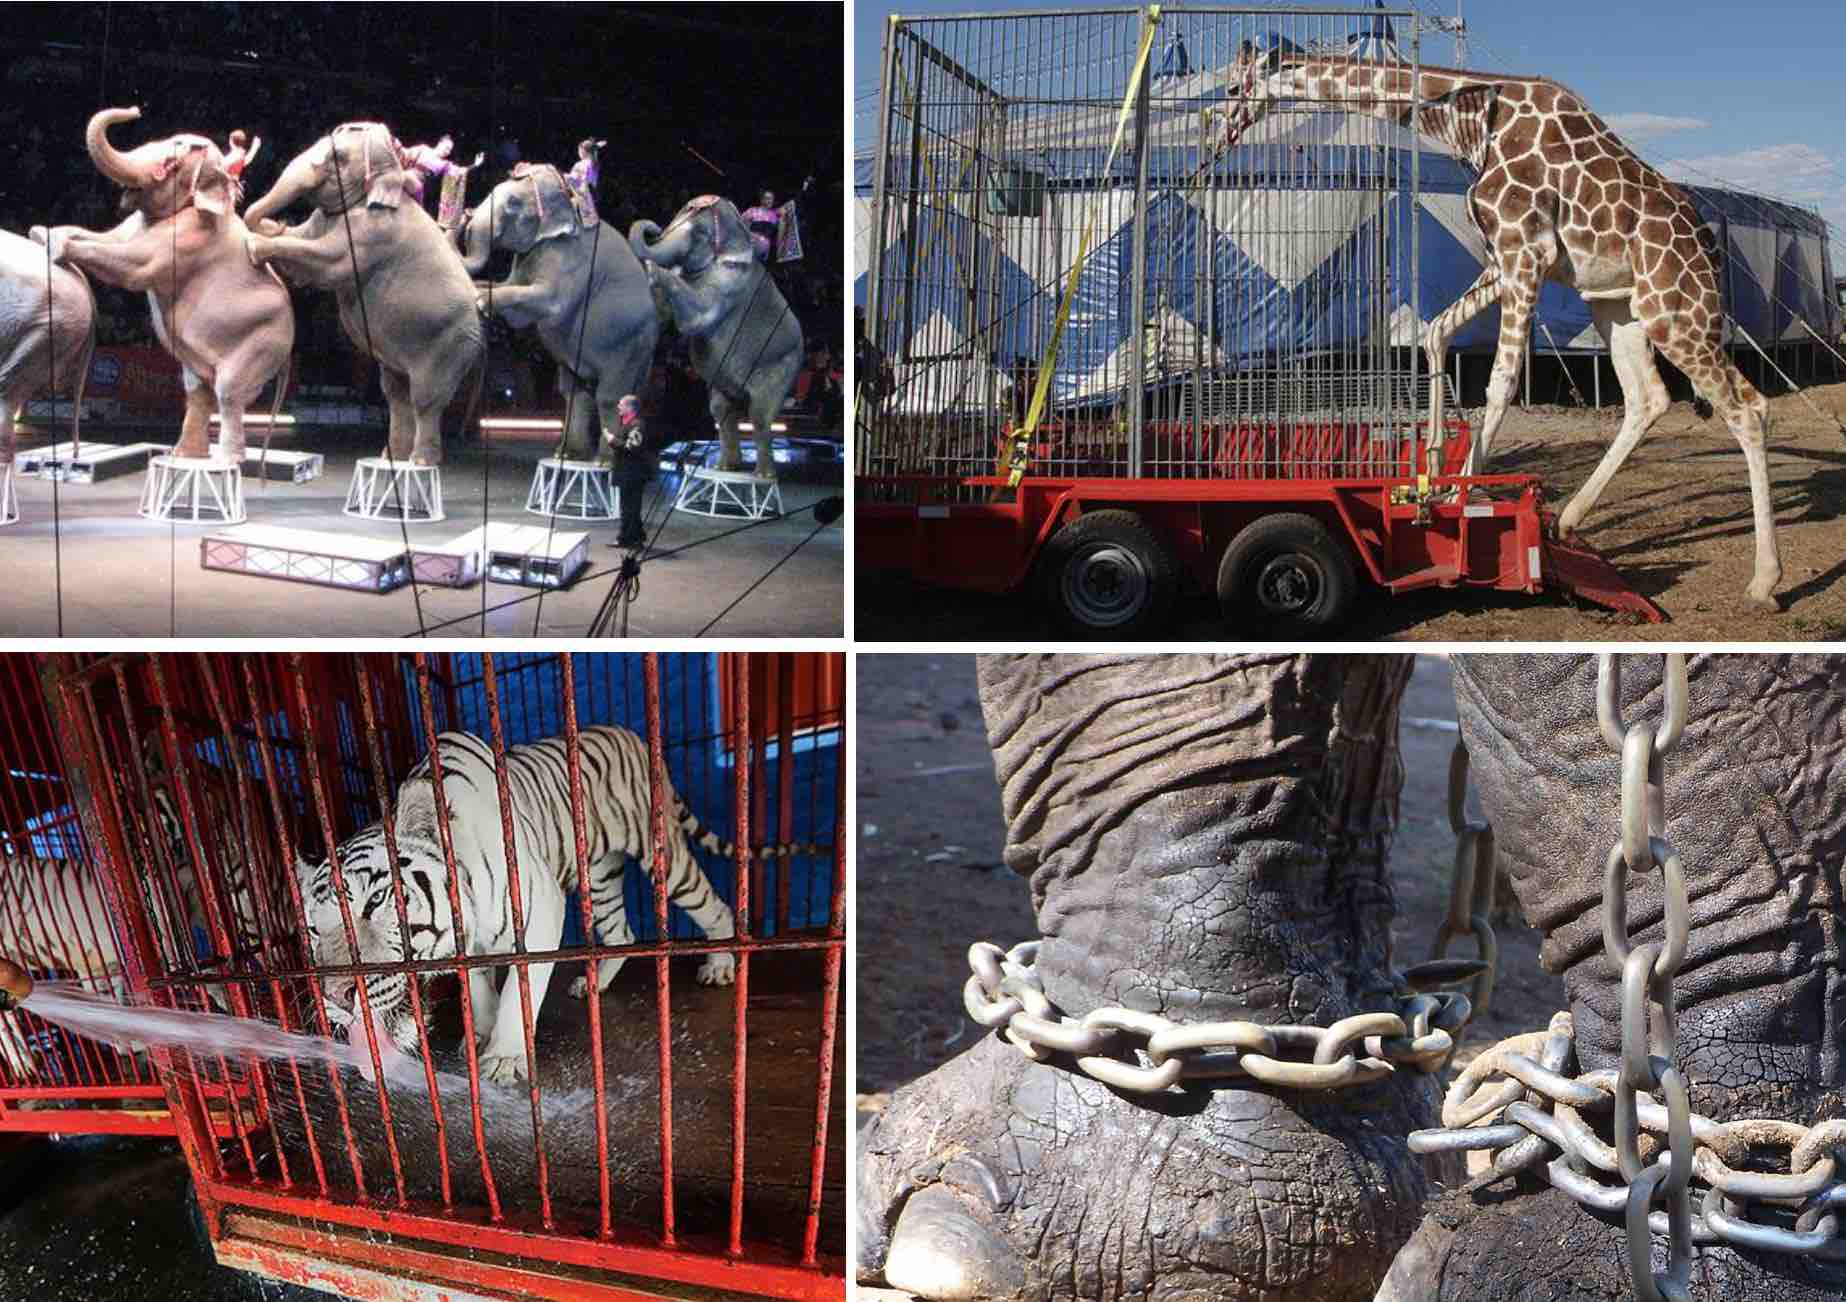 cruelty in zoos and circuses This term includes carnivals, circuses, animal acts, zoos, and educational exhibits, exhibiting such animals whether operated for profit or not [2] this suggests that the goals of zoos and circuses are identical—they both use animals commercially for public exhibits.